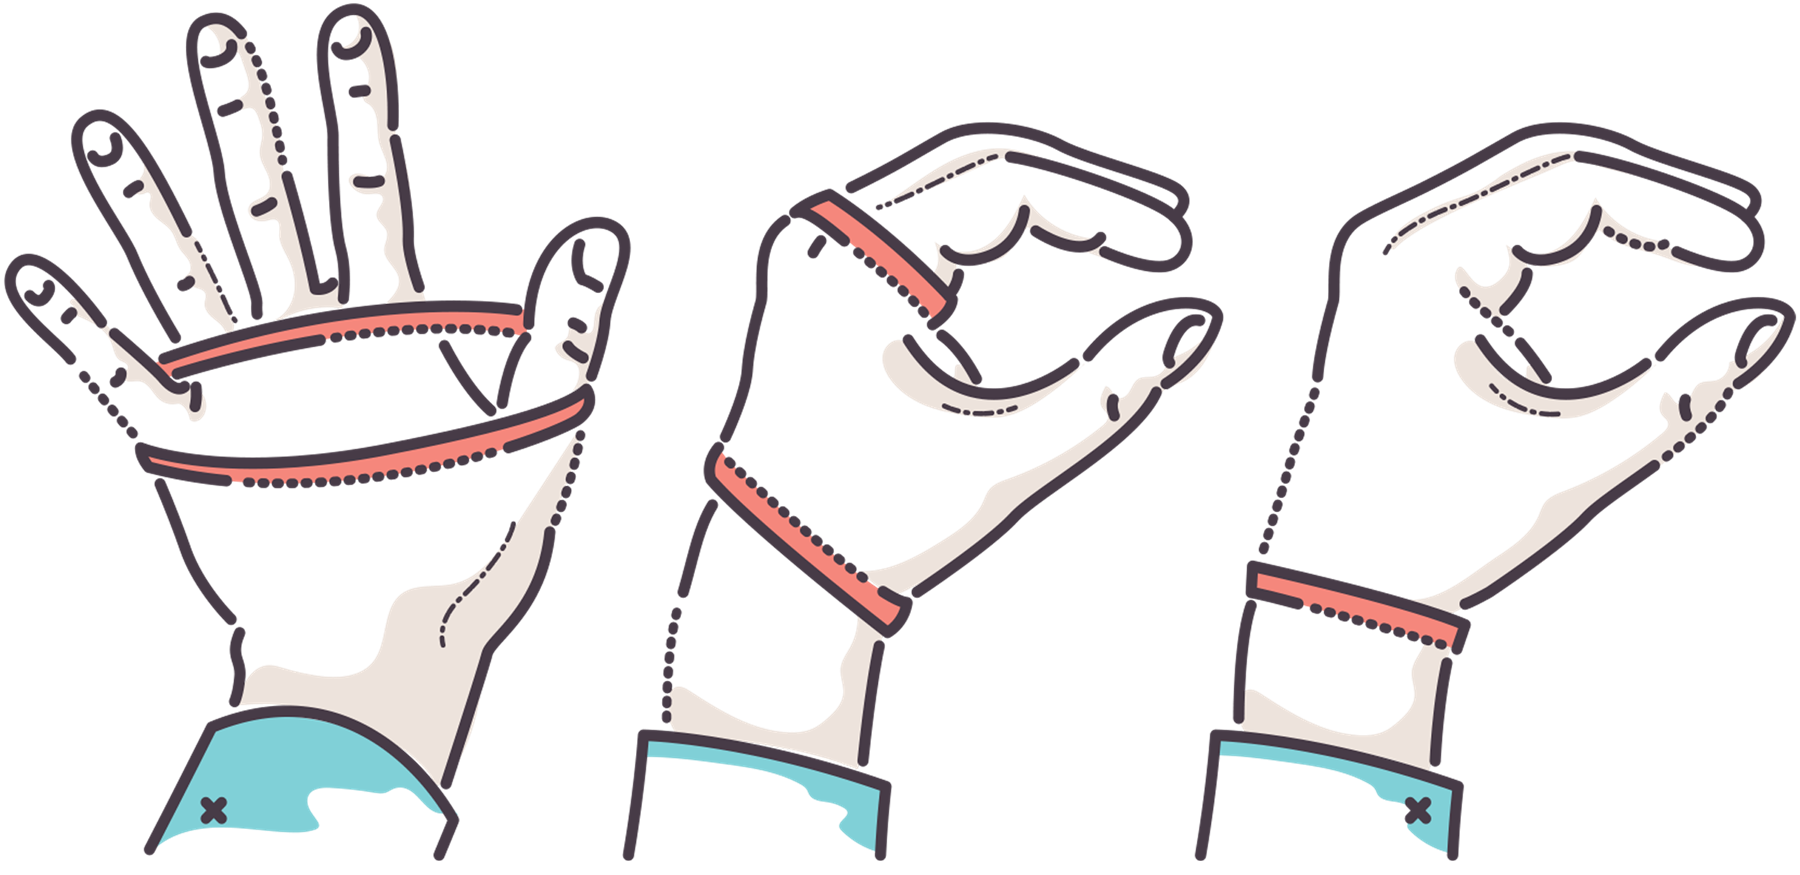 An illustration of elastic bands wrapped around hands.